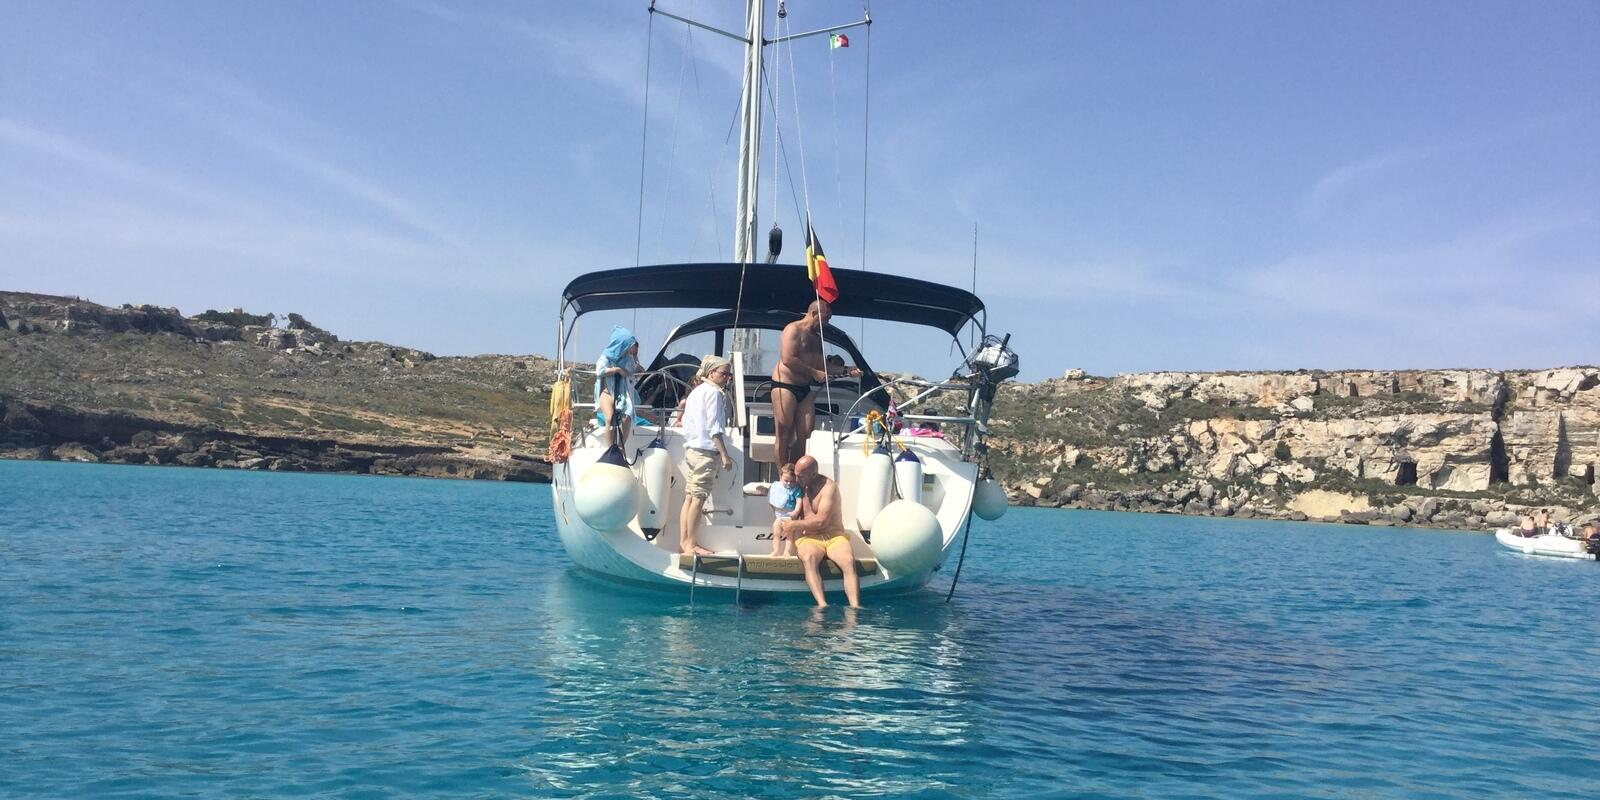 Cruise to the egadi islands all included!